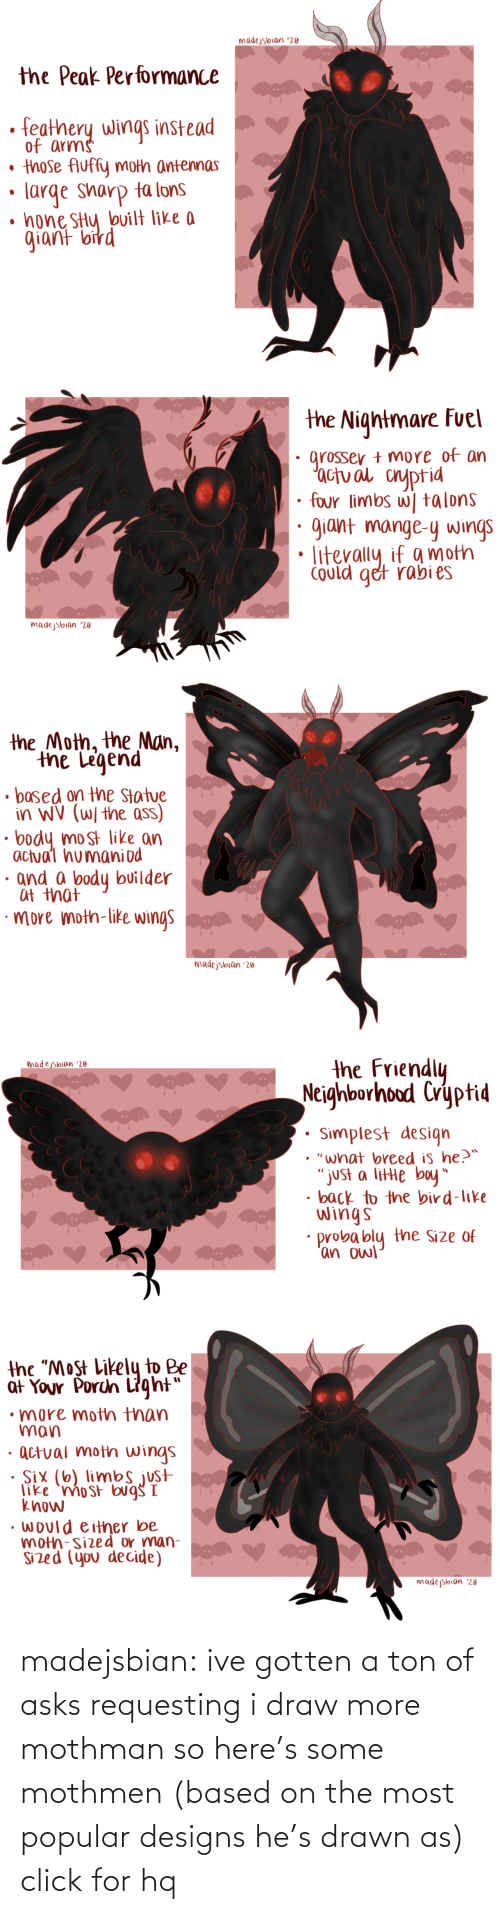 "To Be: madejsbian '20  the Peak Performance  feathery wings instead  of arms  • those Auffy moth antennas  large sharp ta lons  • hone SHy bvilt like a  giant bird   the Nightmare Fuel  grosser + more of an  'actual cnyptid  four limbs w| talons  giant mange-y wings  Could get rabi es  madejsbian '20   the Moth, the Man,  the Legend  • based on the Statue  in WV (W/ the ass)  body most like an  actual humaniod  · and a body builder  at that  ·more moth-like wings  madejsbian '20   the Friendly  Neighborhood Cryptid  madejsbian '20  Simplest design  • ""what breed is he?™  ""just a litte boy""  • back to the bird-like  wings  probably the Size of  'an owl   the ""Most Likely to Be  at Your Porch Light""  •more moth than  man  · actual moth wings  · Six (6) limbs just  like 'mo st bug I  know  • would either be  moth-sized or man-  Sized (you decide)  madejsbian '20 madejsbian: ive gotten a ton of asks requesting i draw more mothman so here's some mothmen (based on the most popular designs he's drawn as)